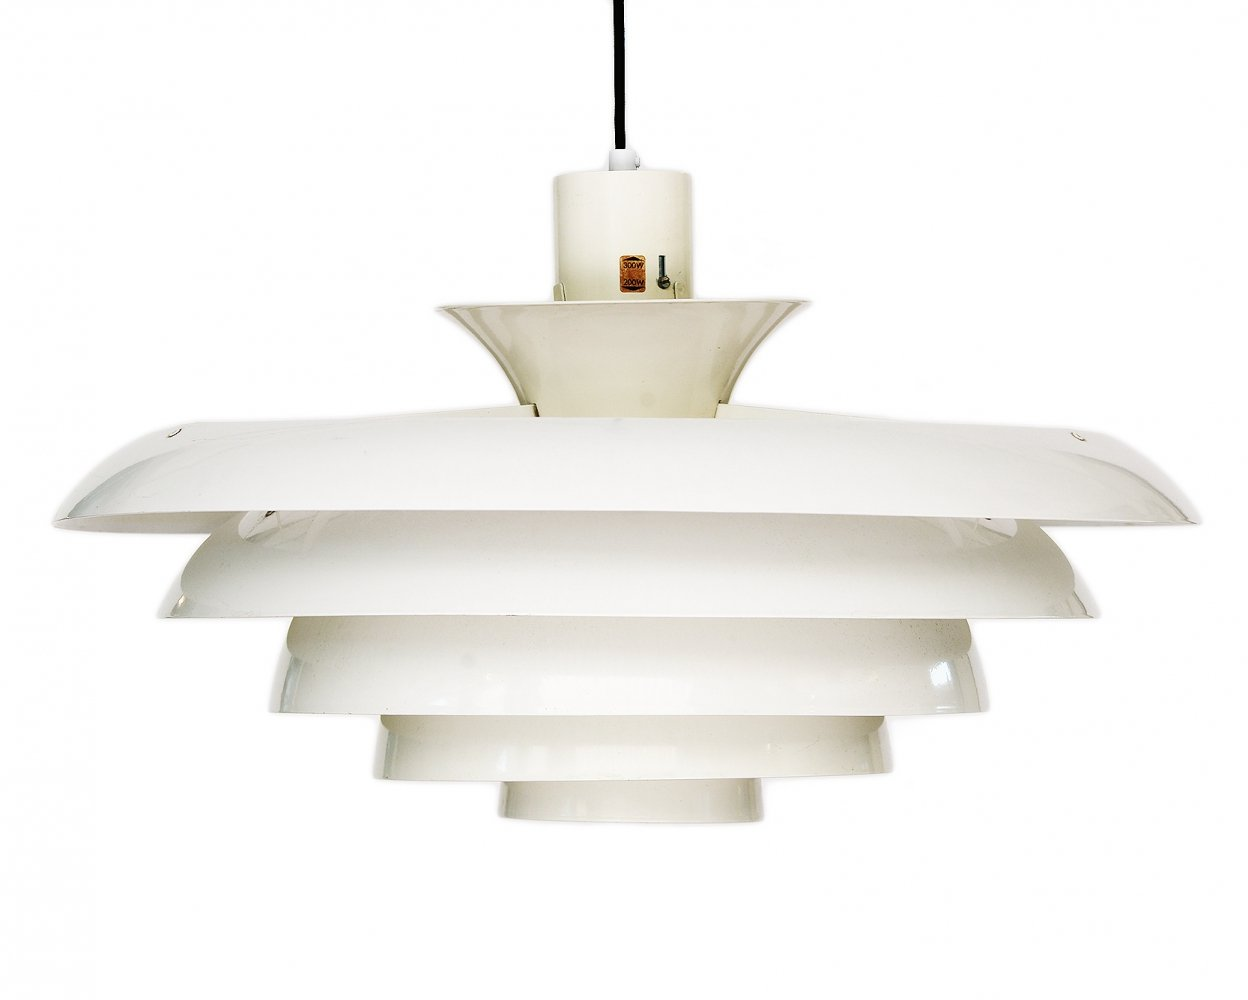 Space age XL pendant light by Fagerhults belysning, Sweden 1970s